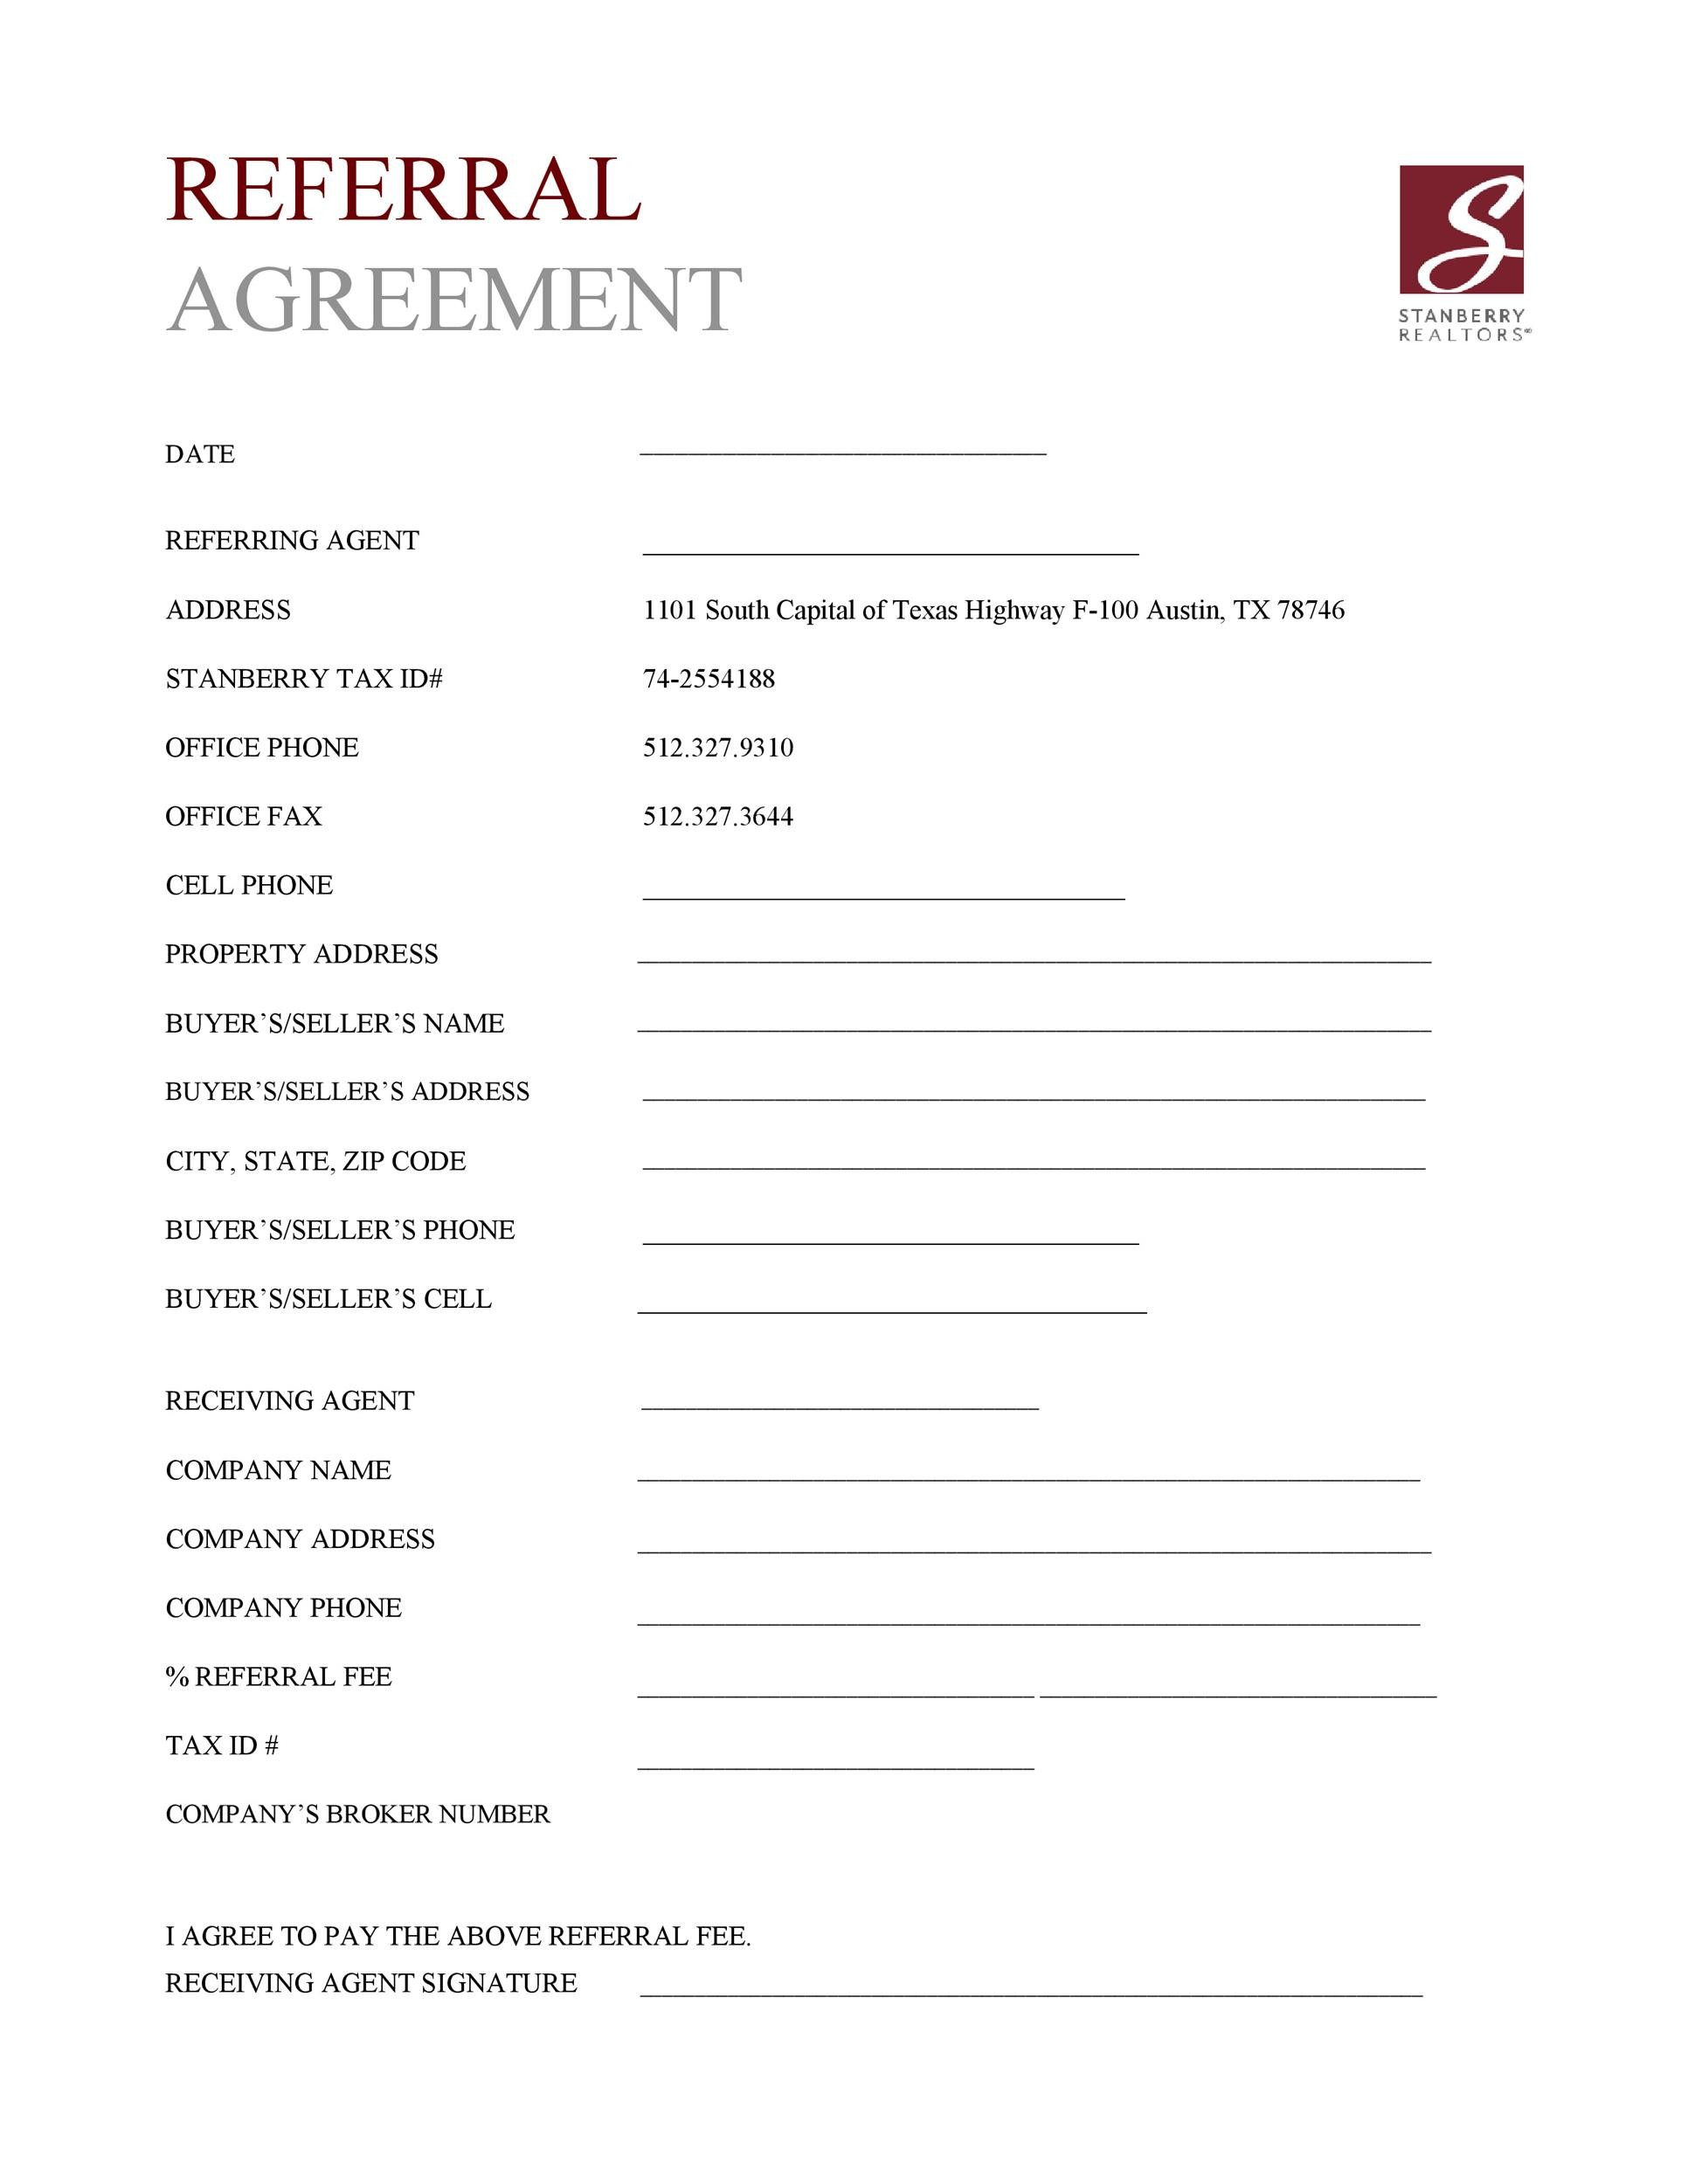 Free referral agreement template 38